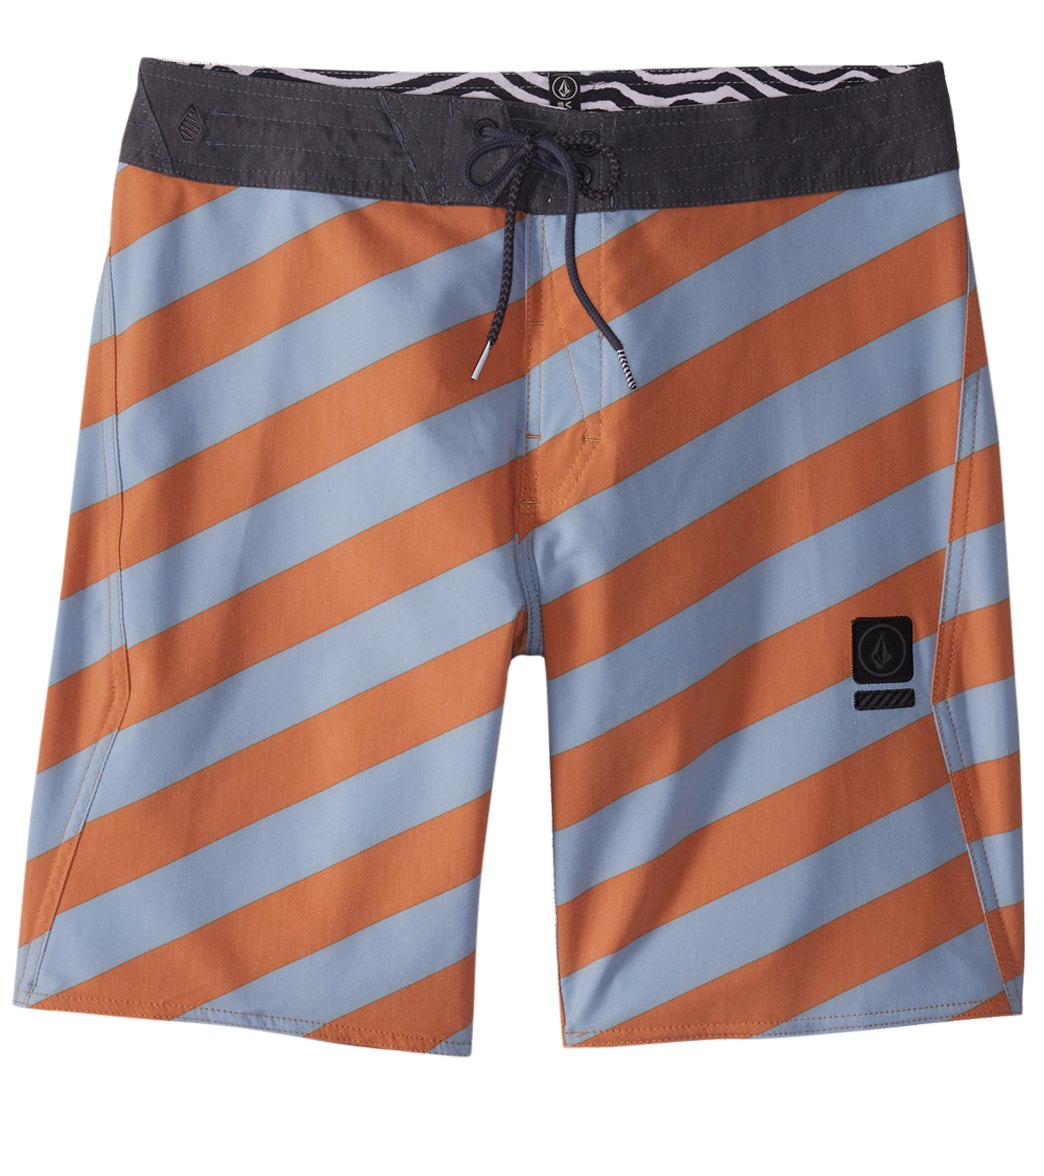 54f3ab9552 Volcom Men's Stripey Stoney 19'' Boardshort at SwimOutlet.com - Free  Shipping